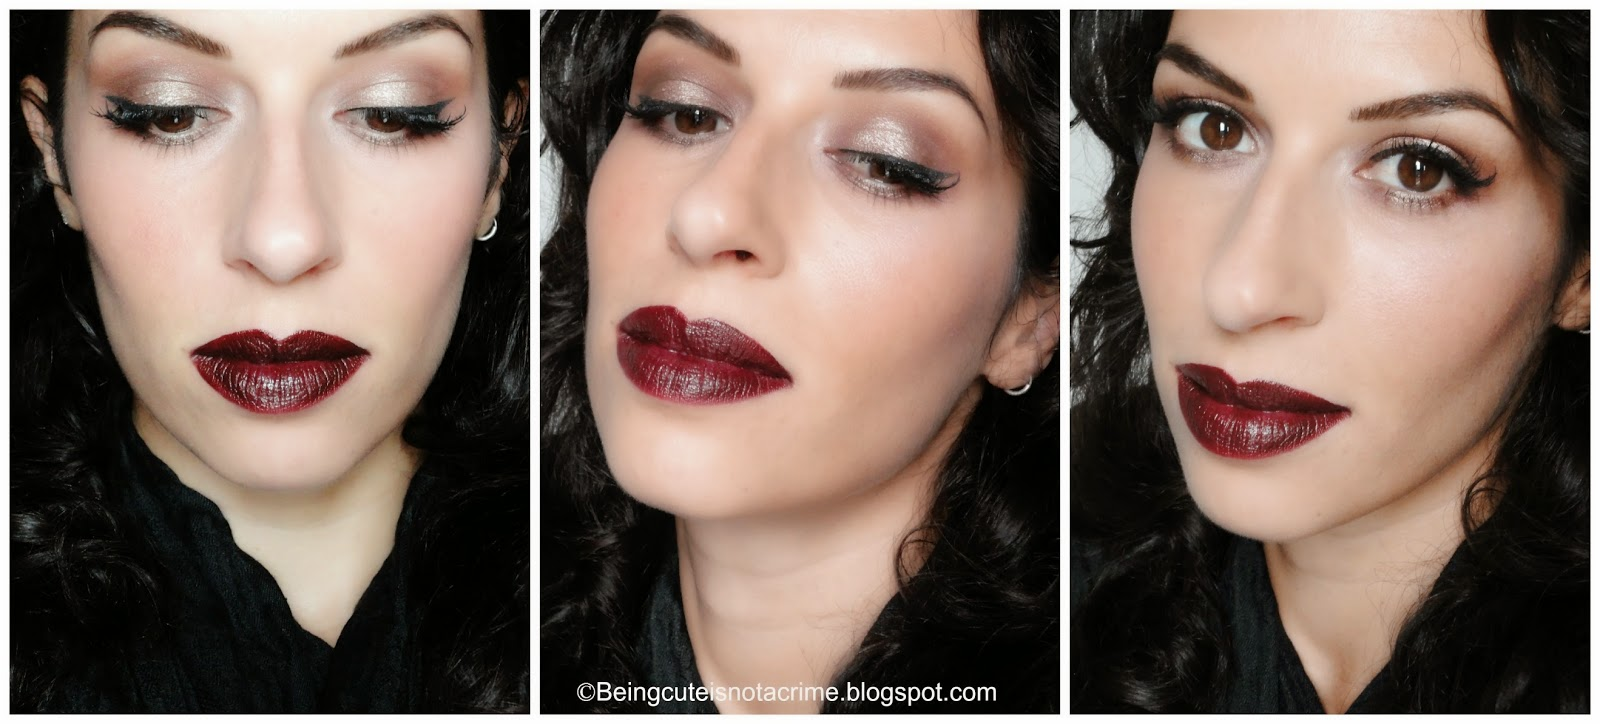 http://beingcuteisnotacrime.blogspot.nl/2014/11/vampy-lips-autumn-look-nikkietutorials.html